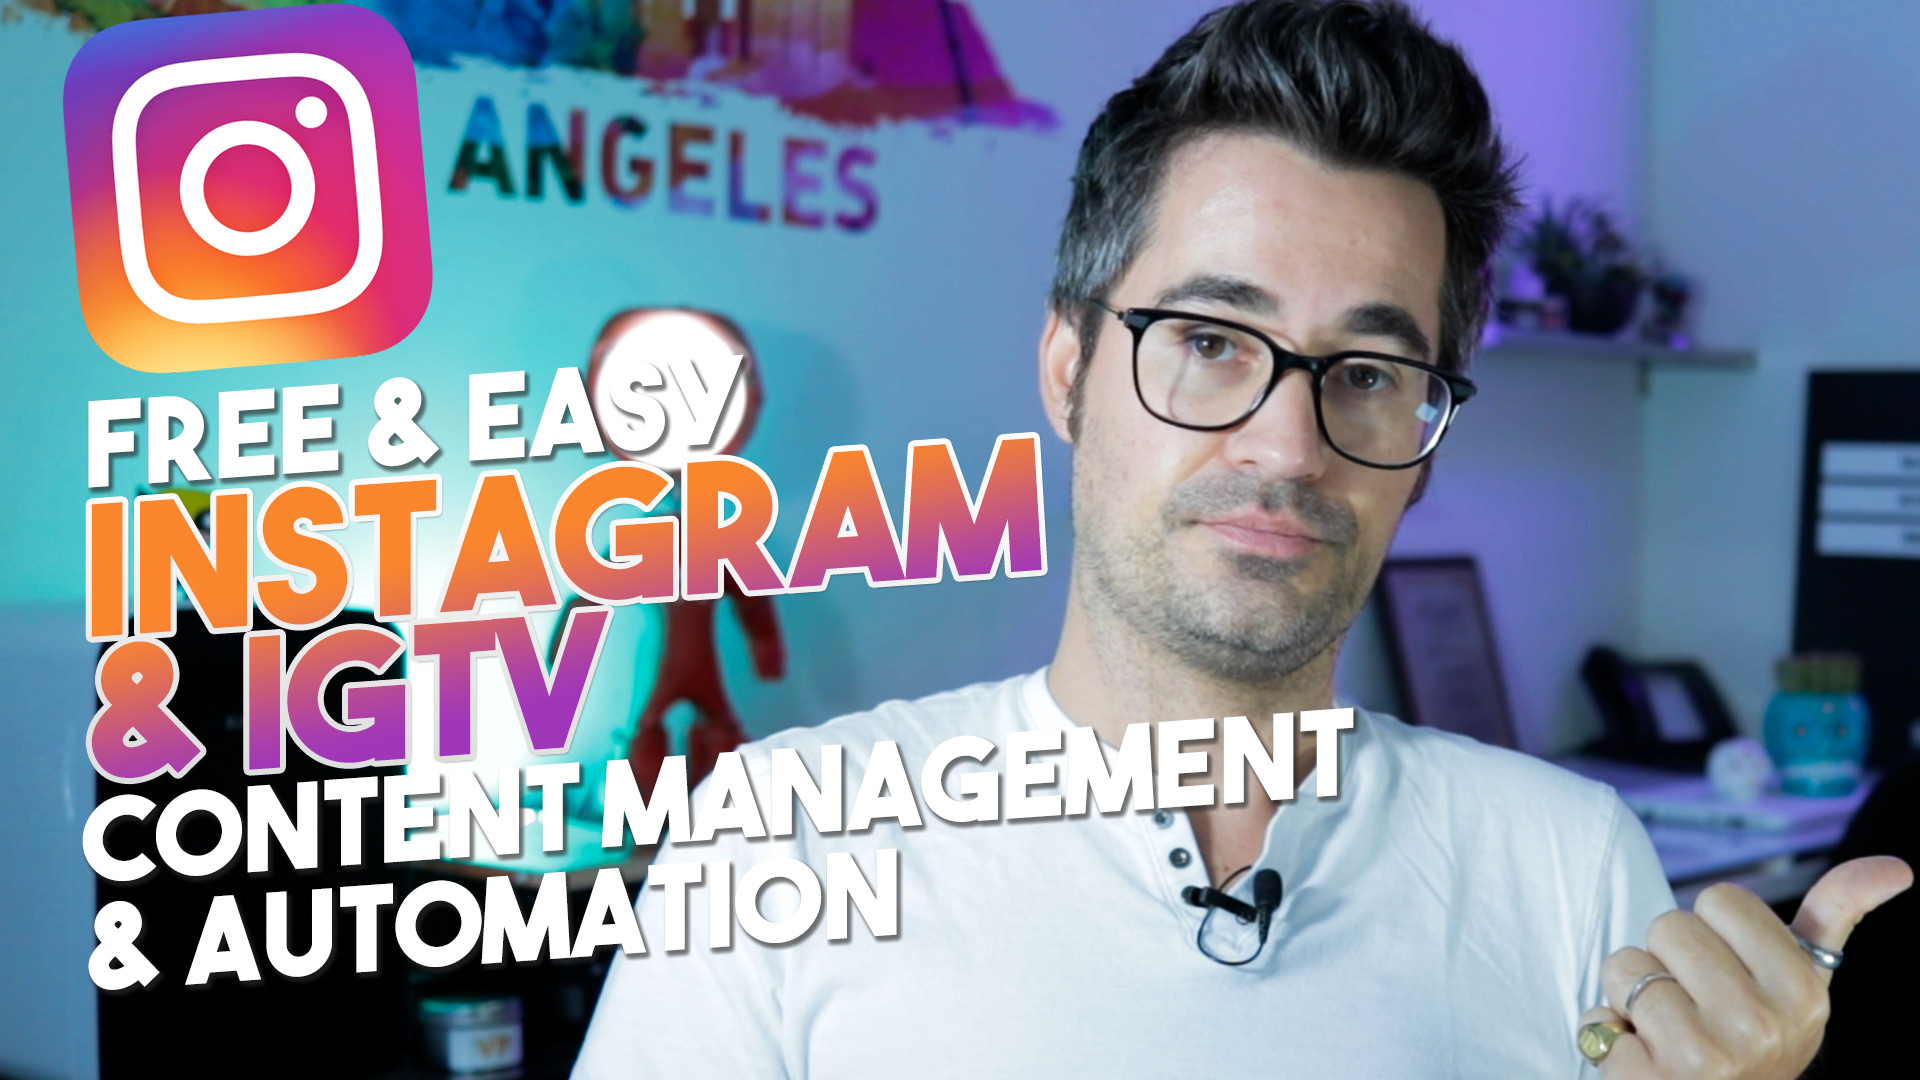 Gérer Instagram & IGTV facilement + gratuitement sur son ordinateur – Facebook Creator Studio video guide